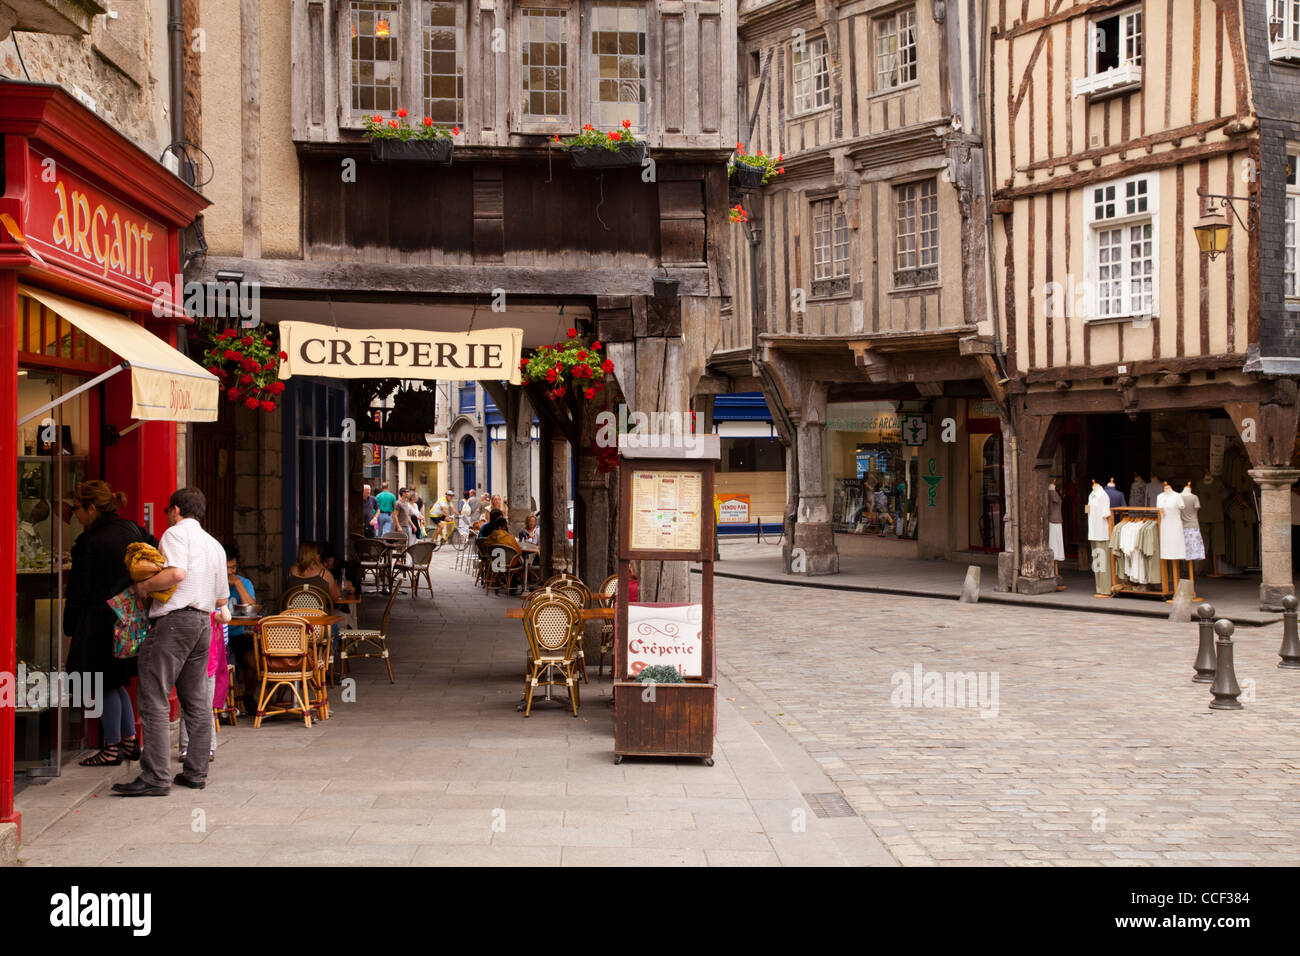 Shops, restaurants and ancient half timbered buildings in the medieval centre of Dinan, Brittany, France. - Stock Image